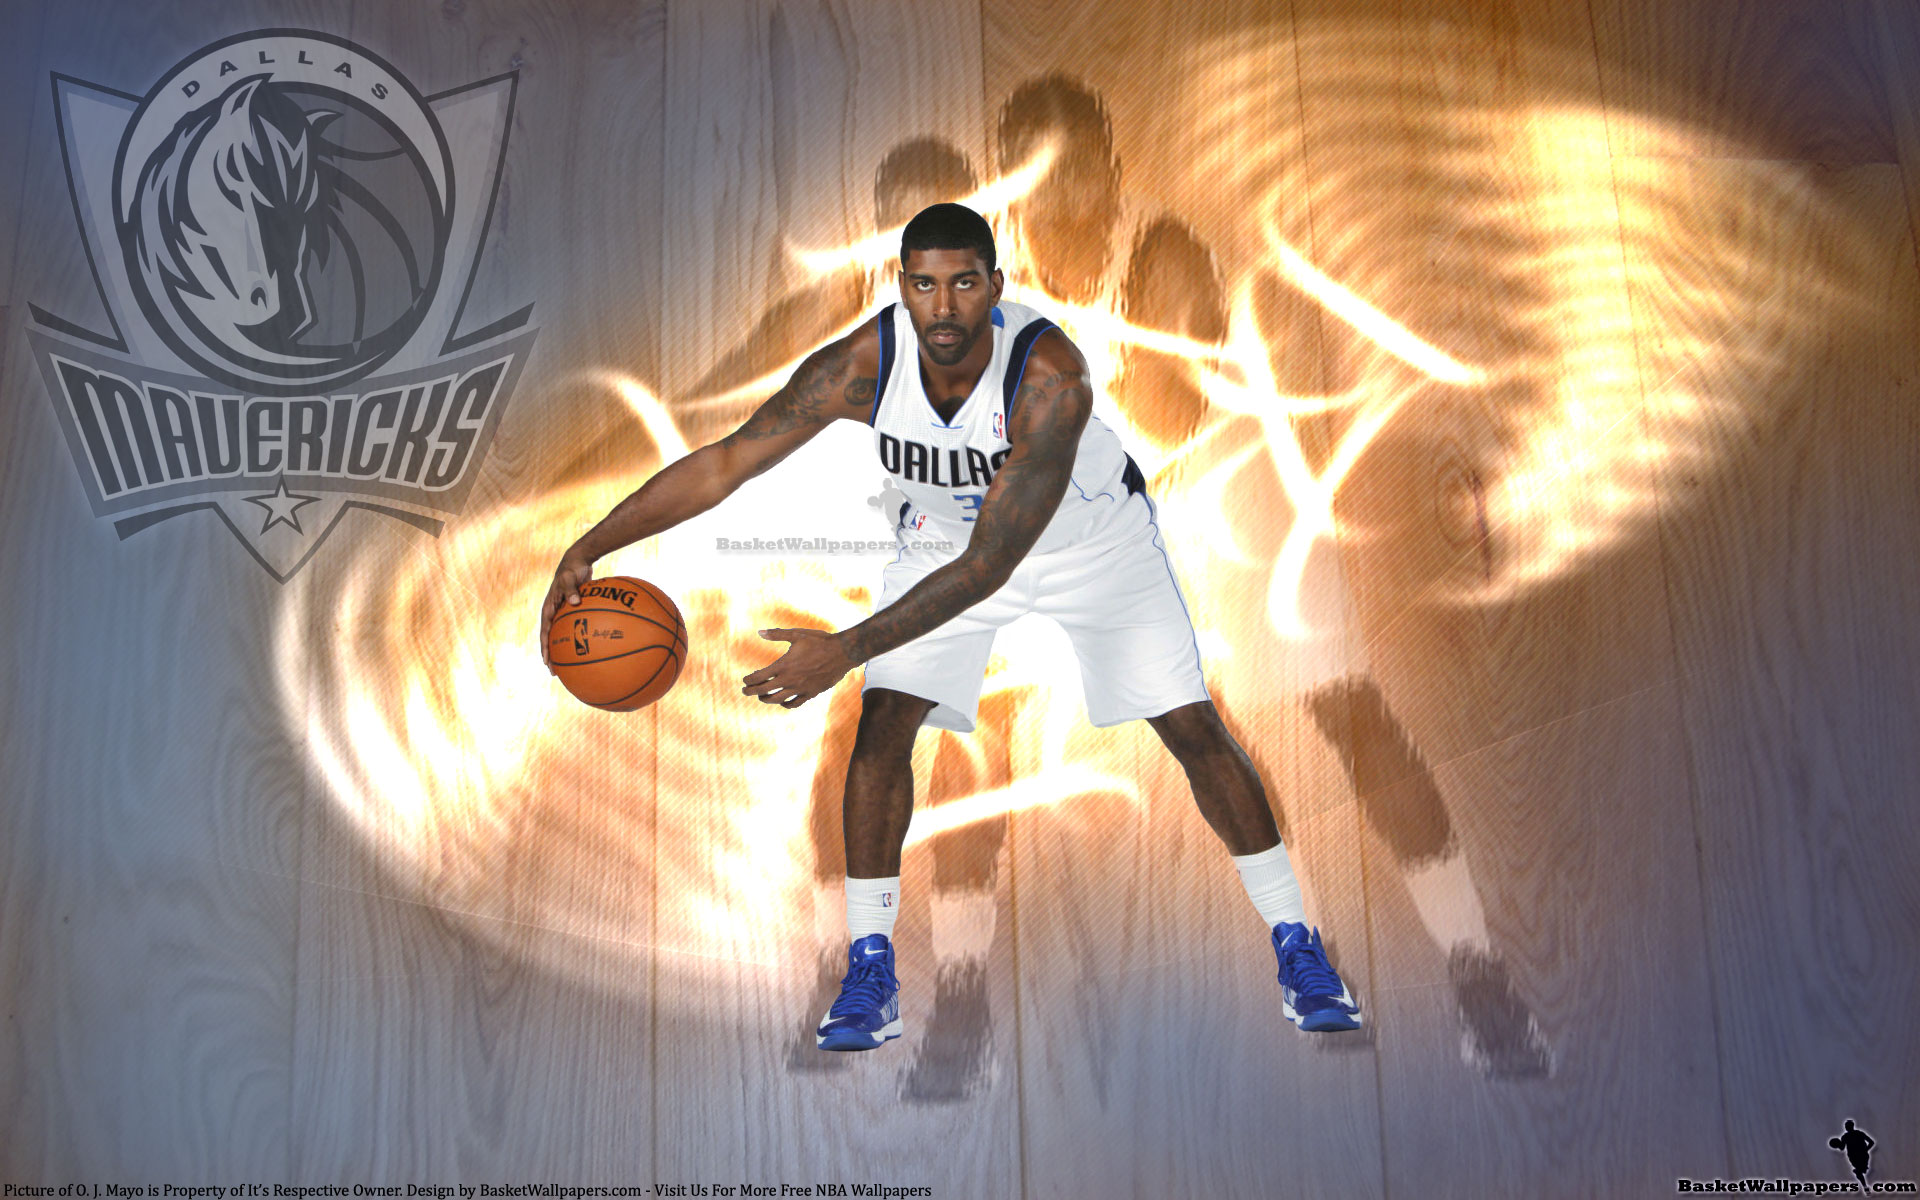 OJ Mayo Dallas Mavericks 2012 1920x1200 Wallpaper